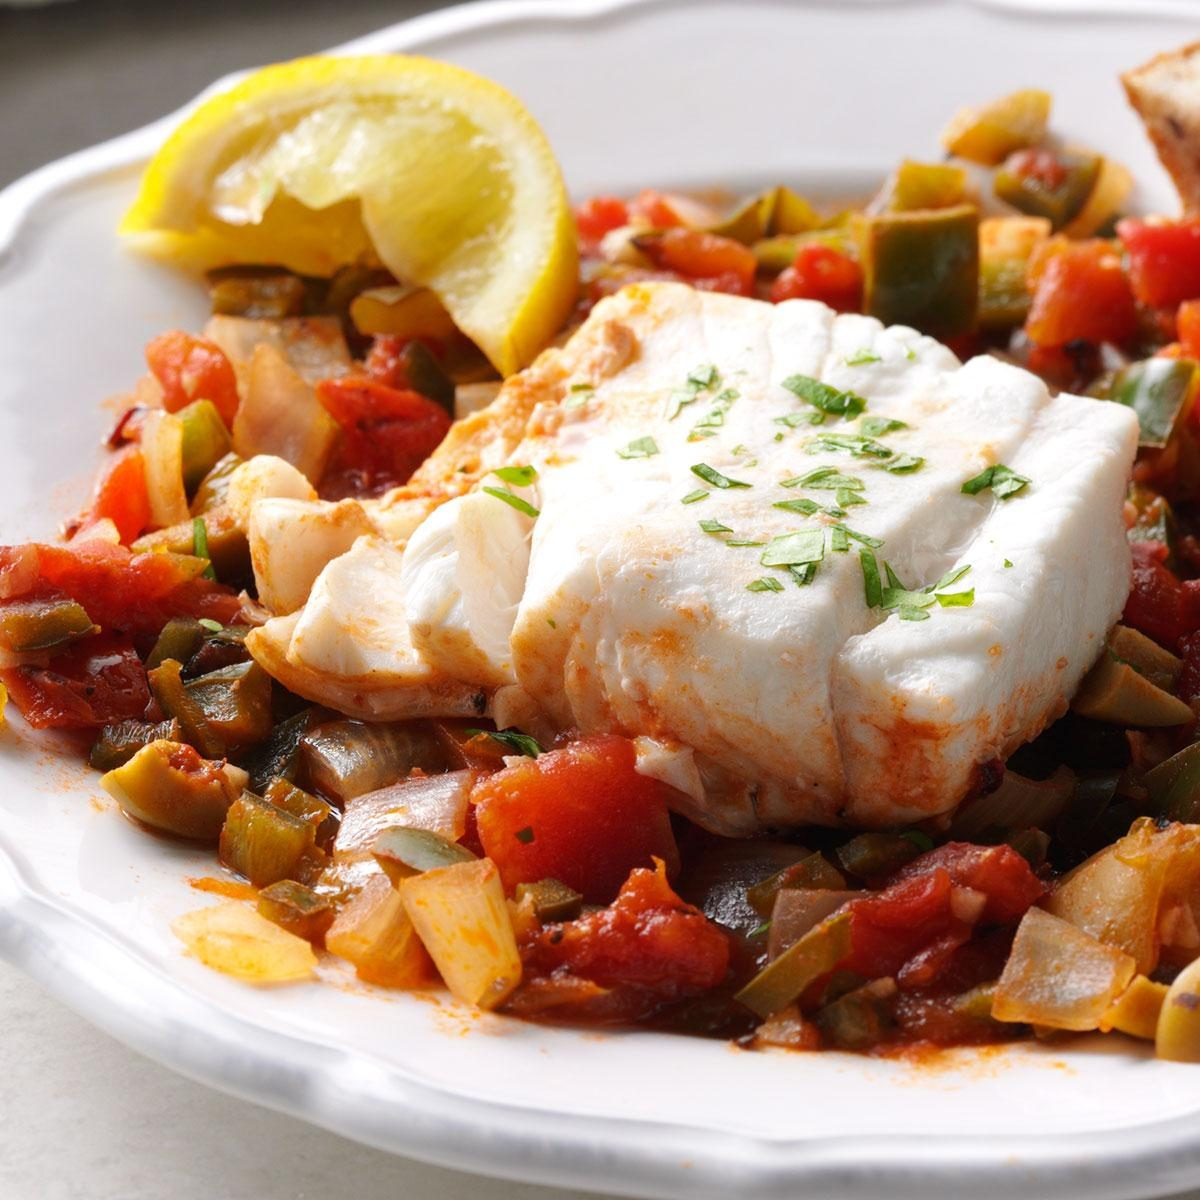 Tomato-Poached Halibut Recipe | Taste of Home